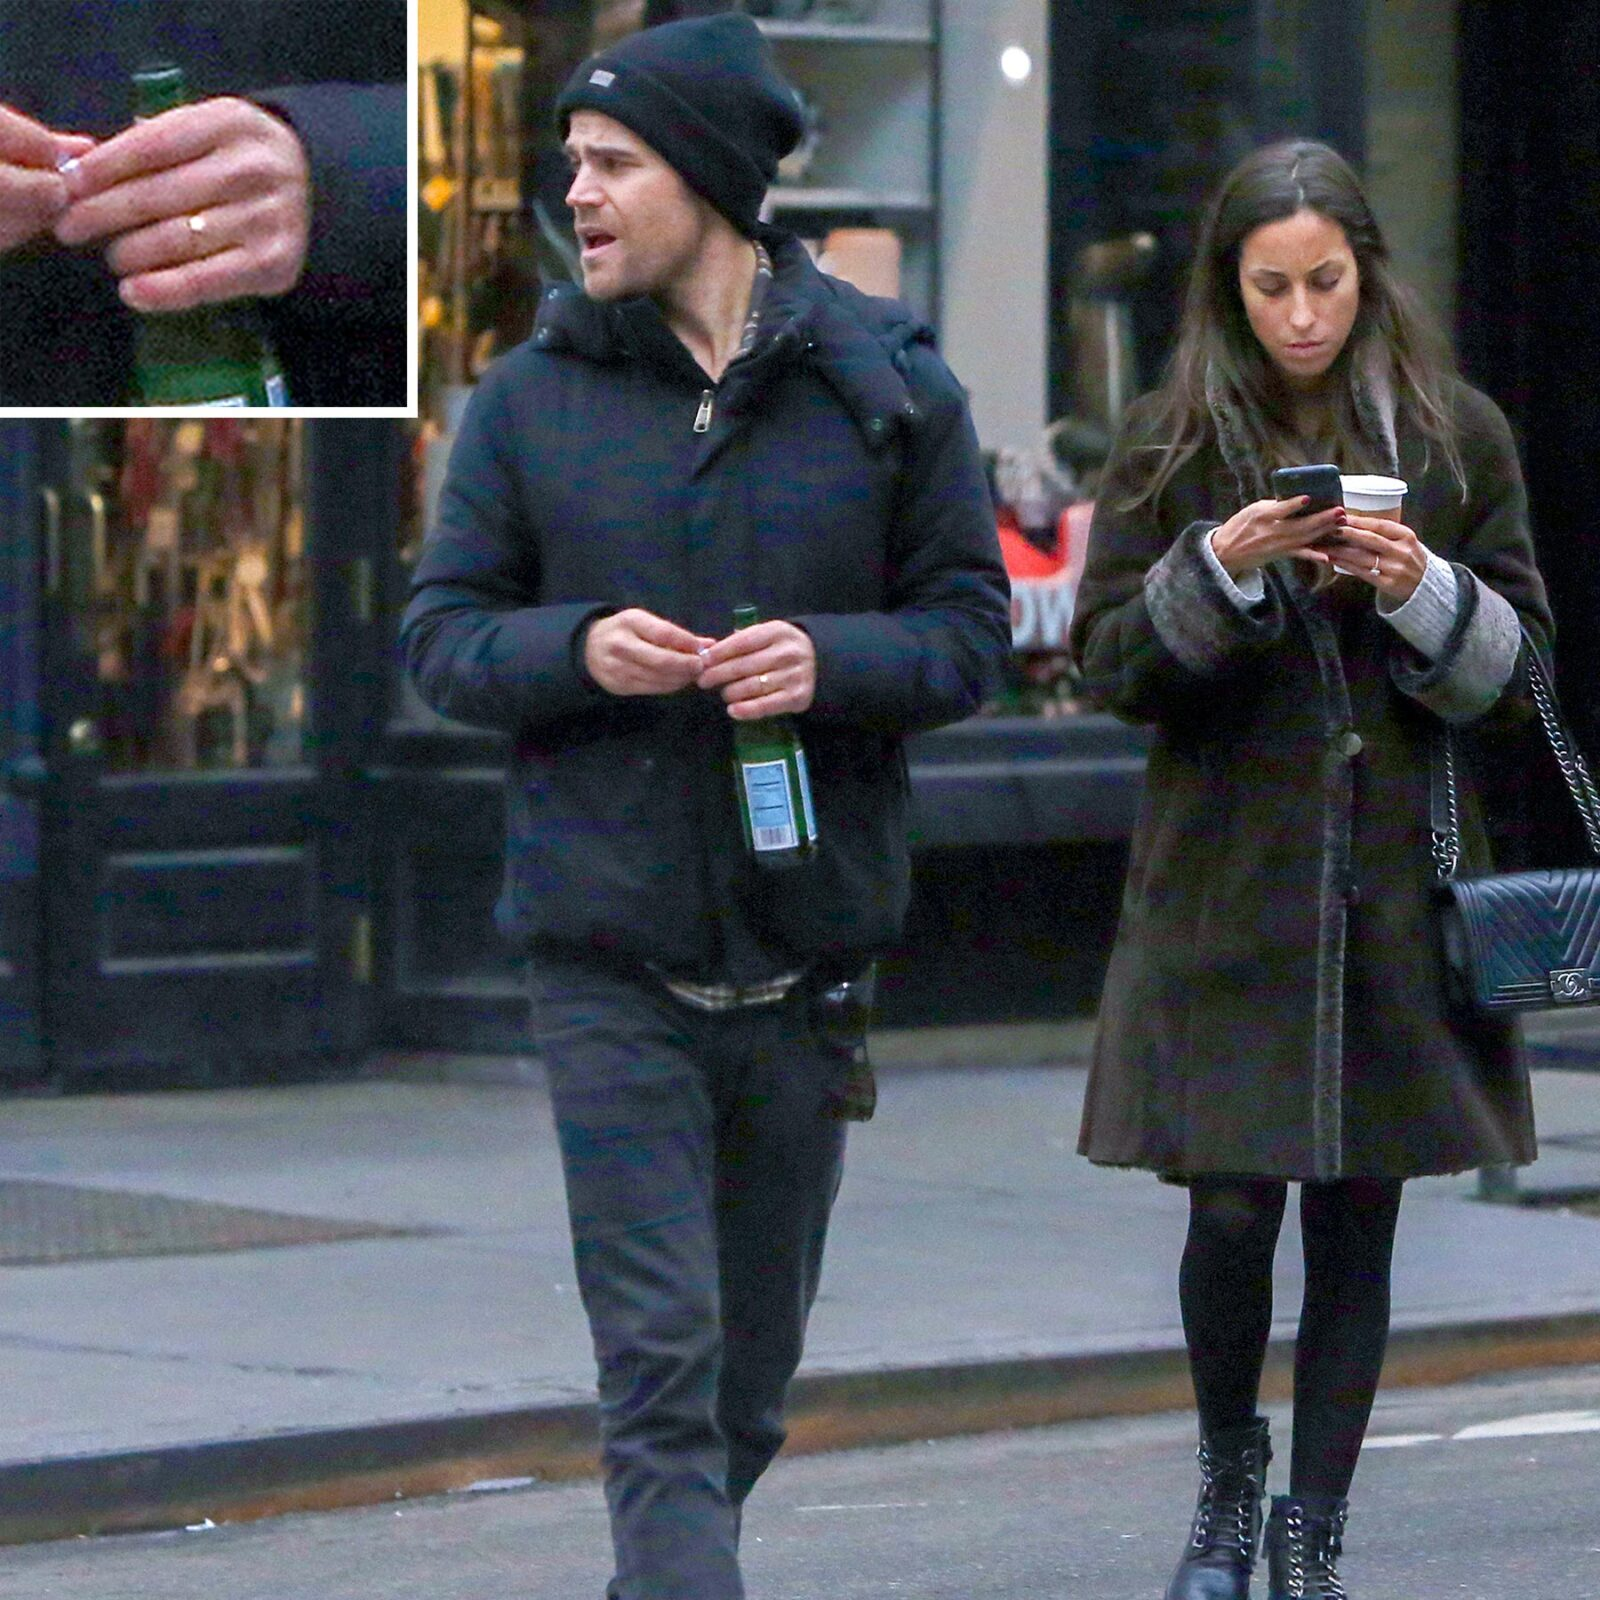 Secretly Married? Paul Wesley and Girlfriend of Several Months Step Out Wearing Matching Rings 1